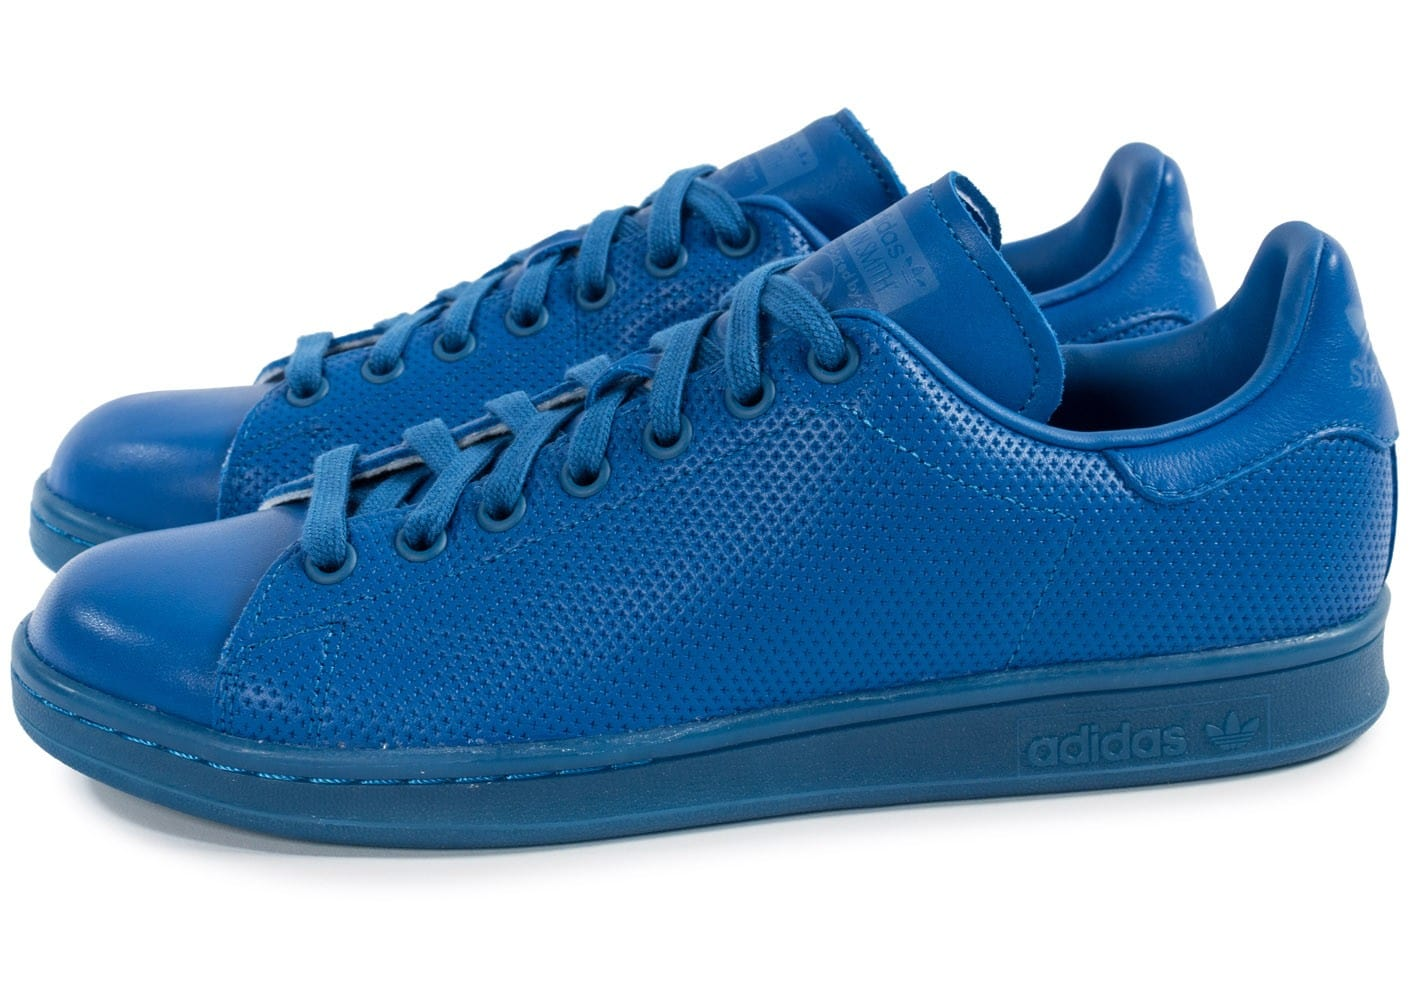 adidas stan smith adicolor bleu chaussures homme chausport. Black Bedroom Furniture Sets. Home Design Ideas